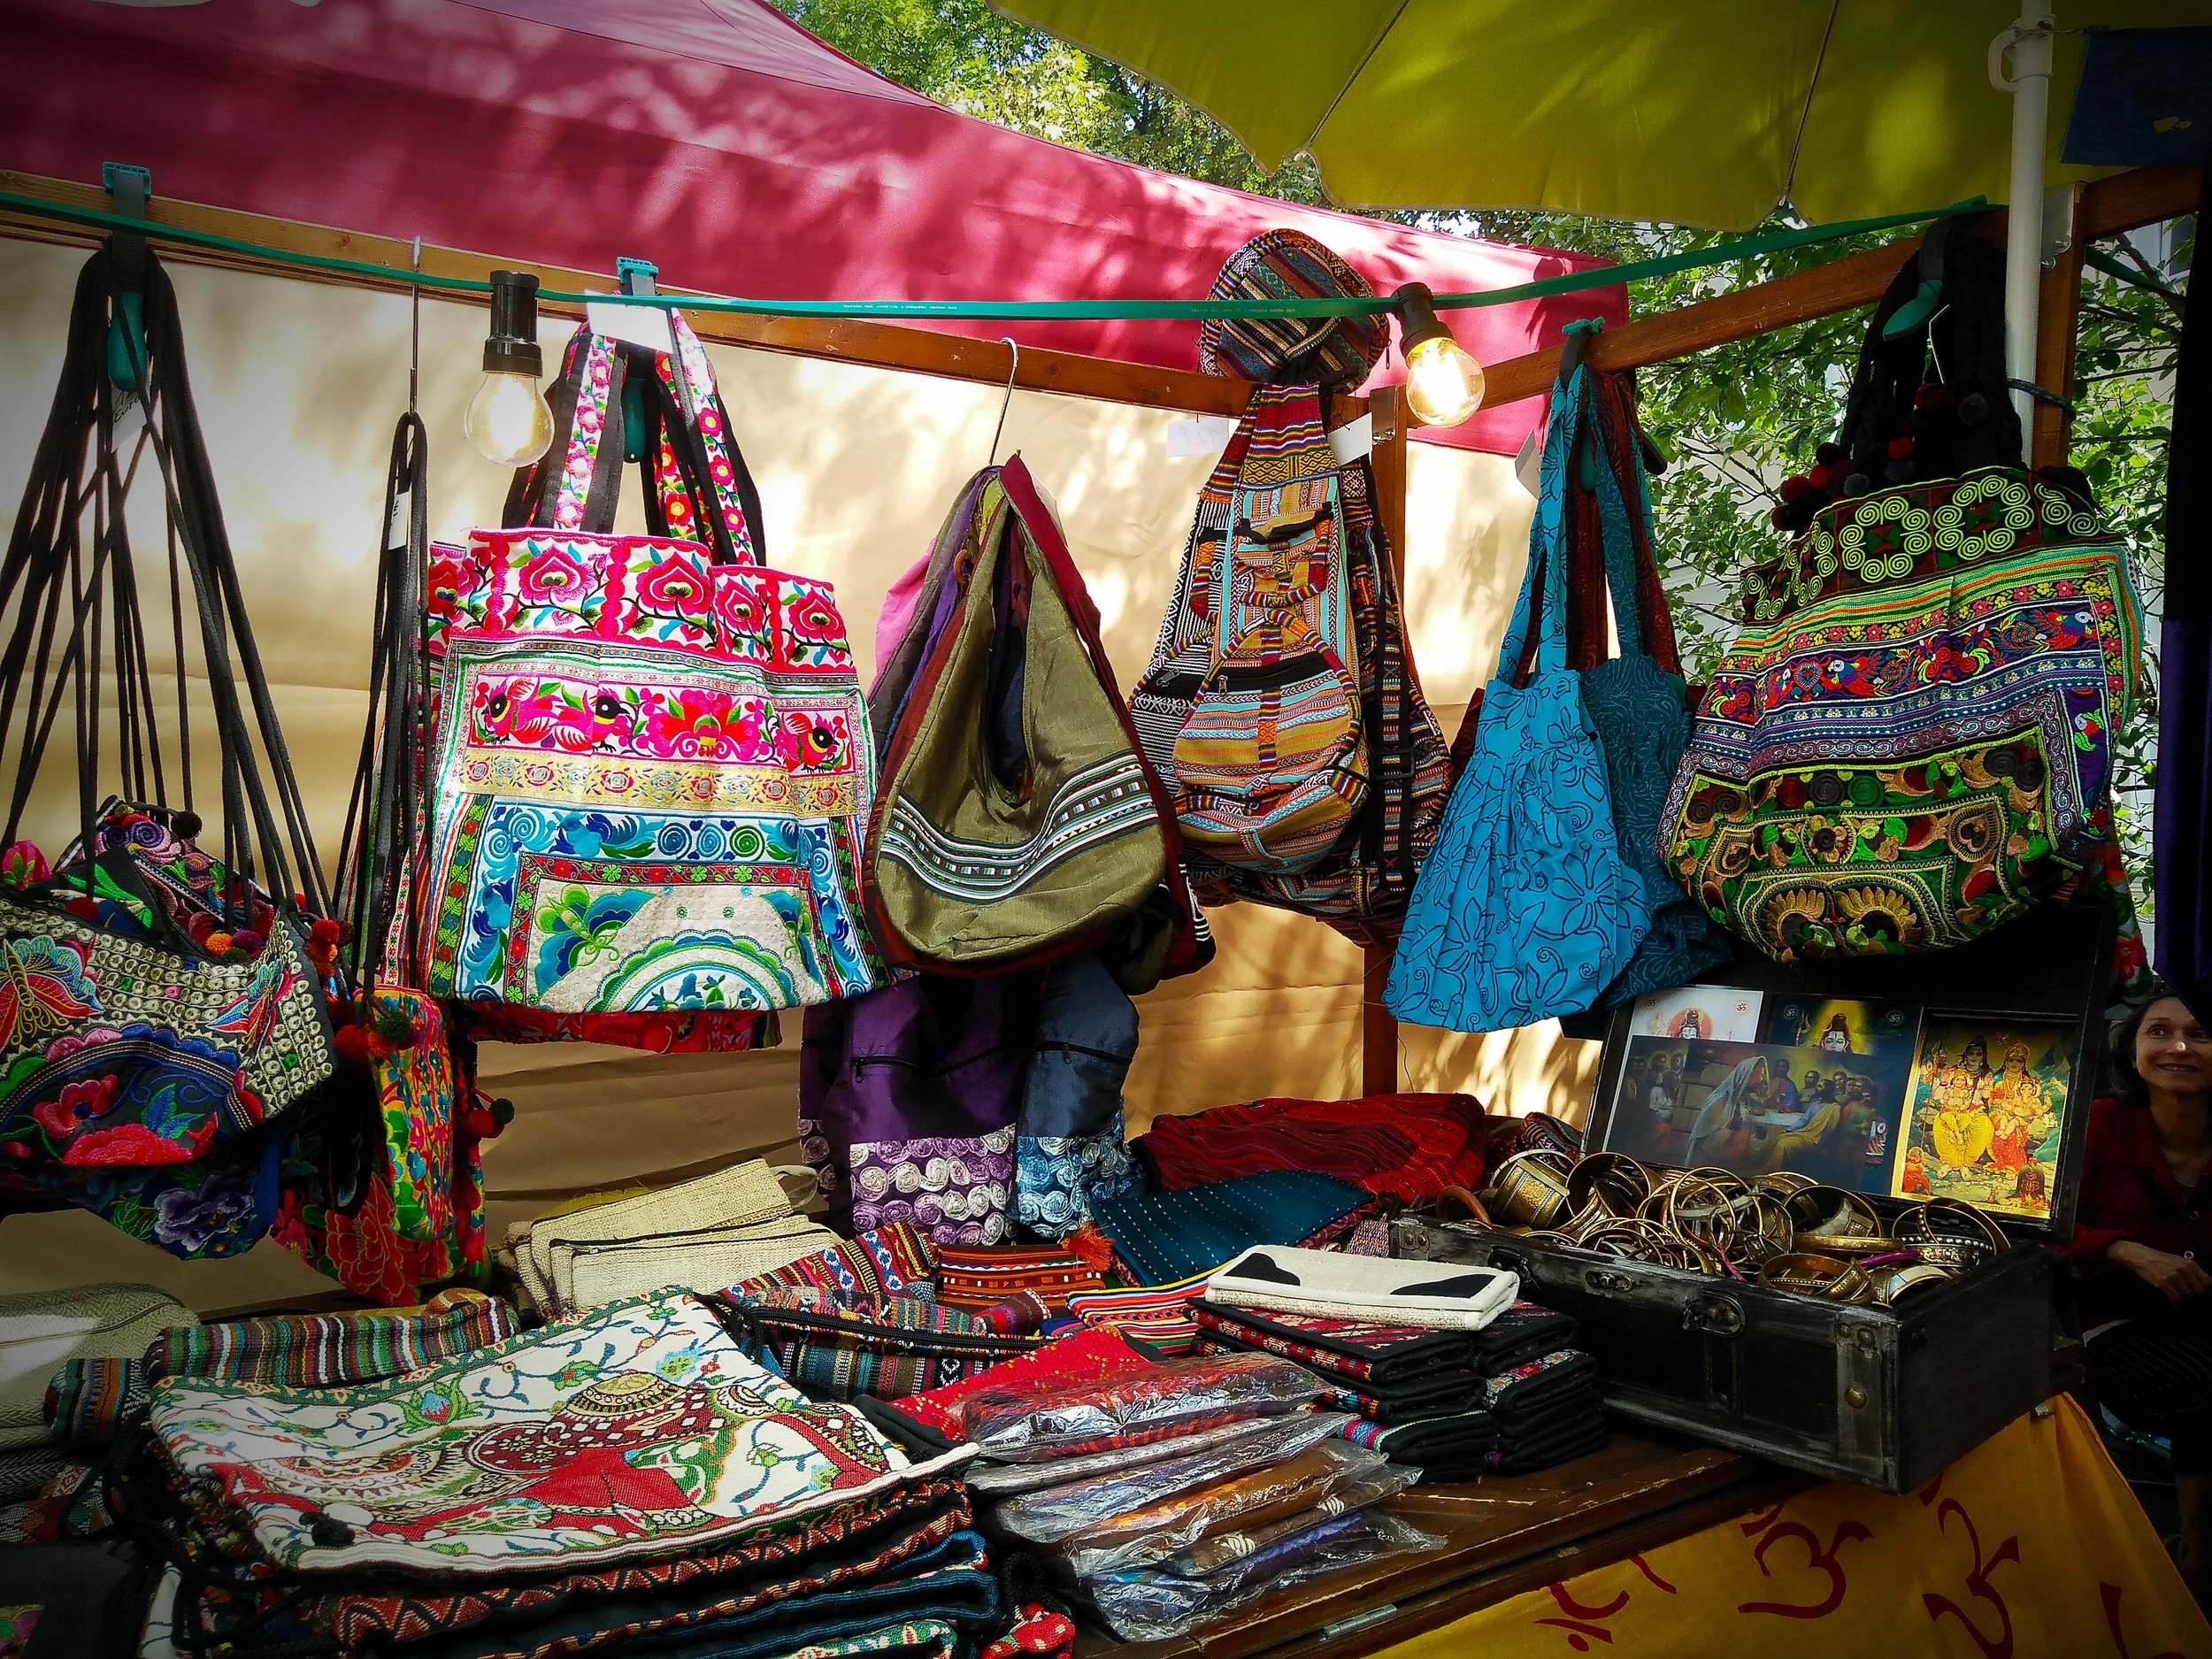 Carnival of Cultures, Berlin, Germany 2019. Miao and Southeast Asian Hmong textile hand bags and wallets mixed with a variety of other textiles.